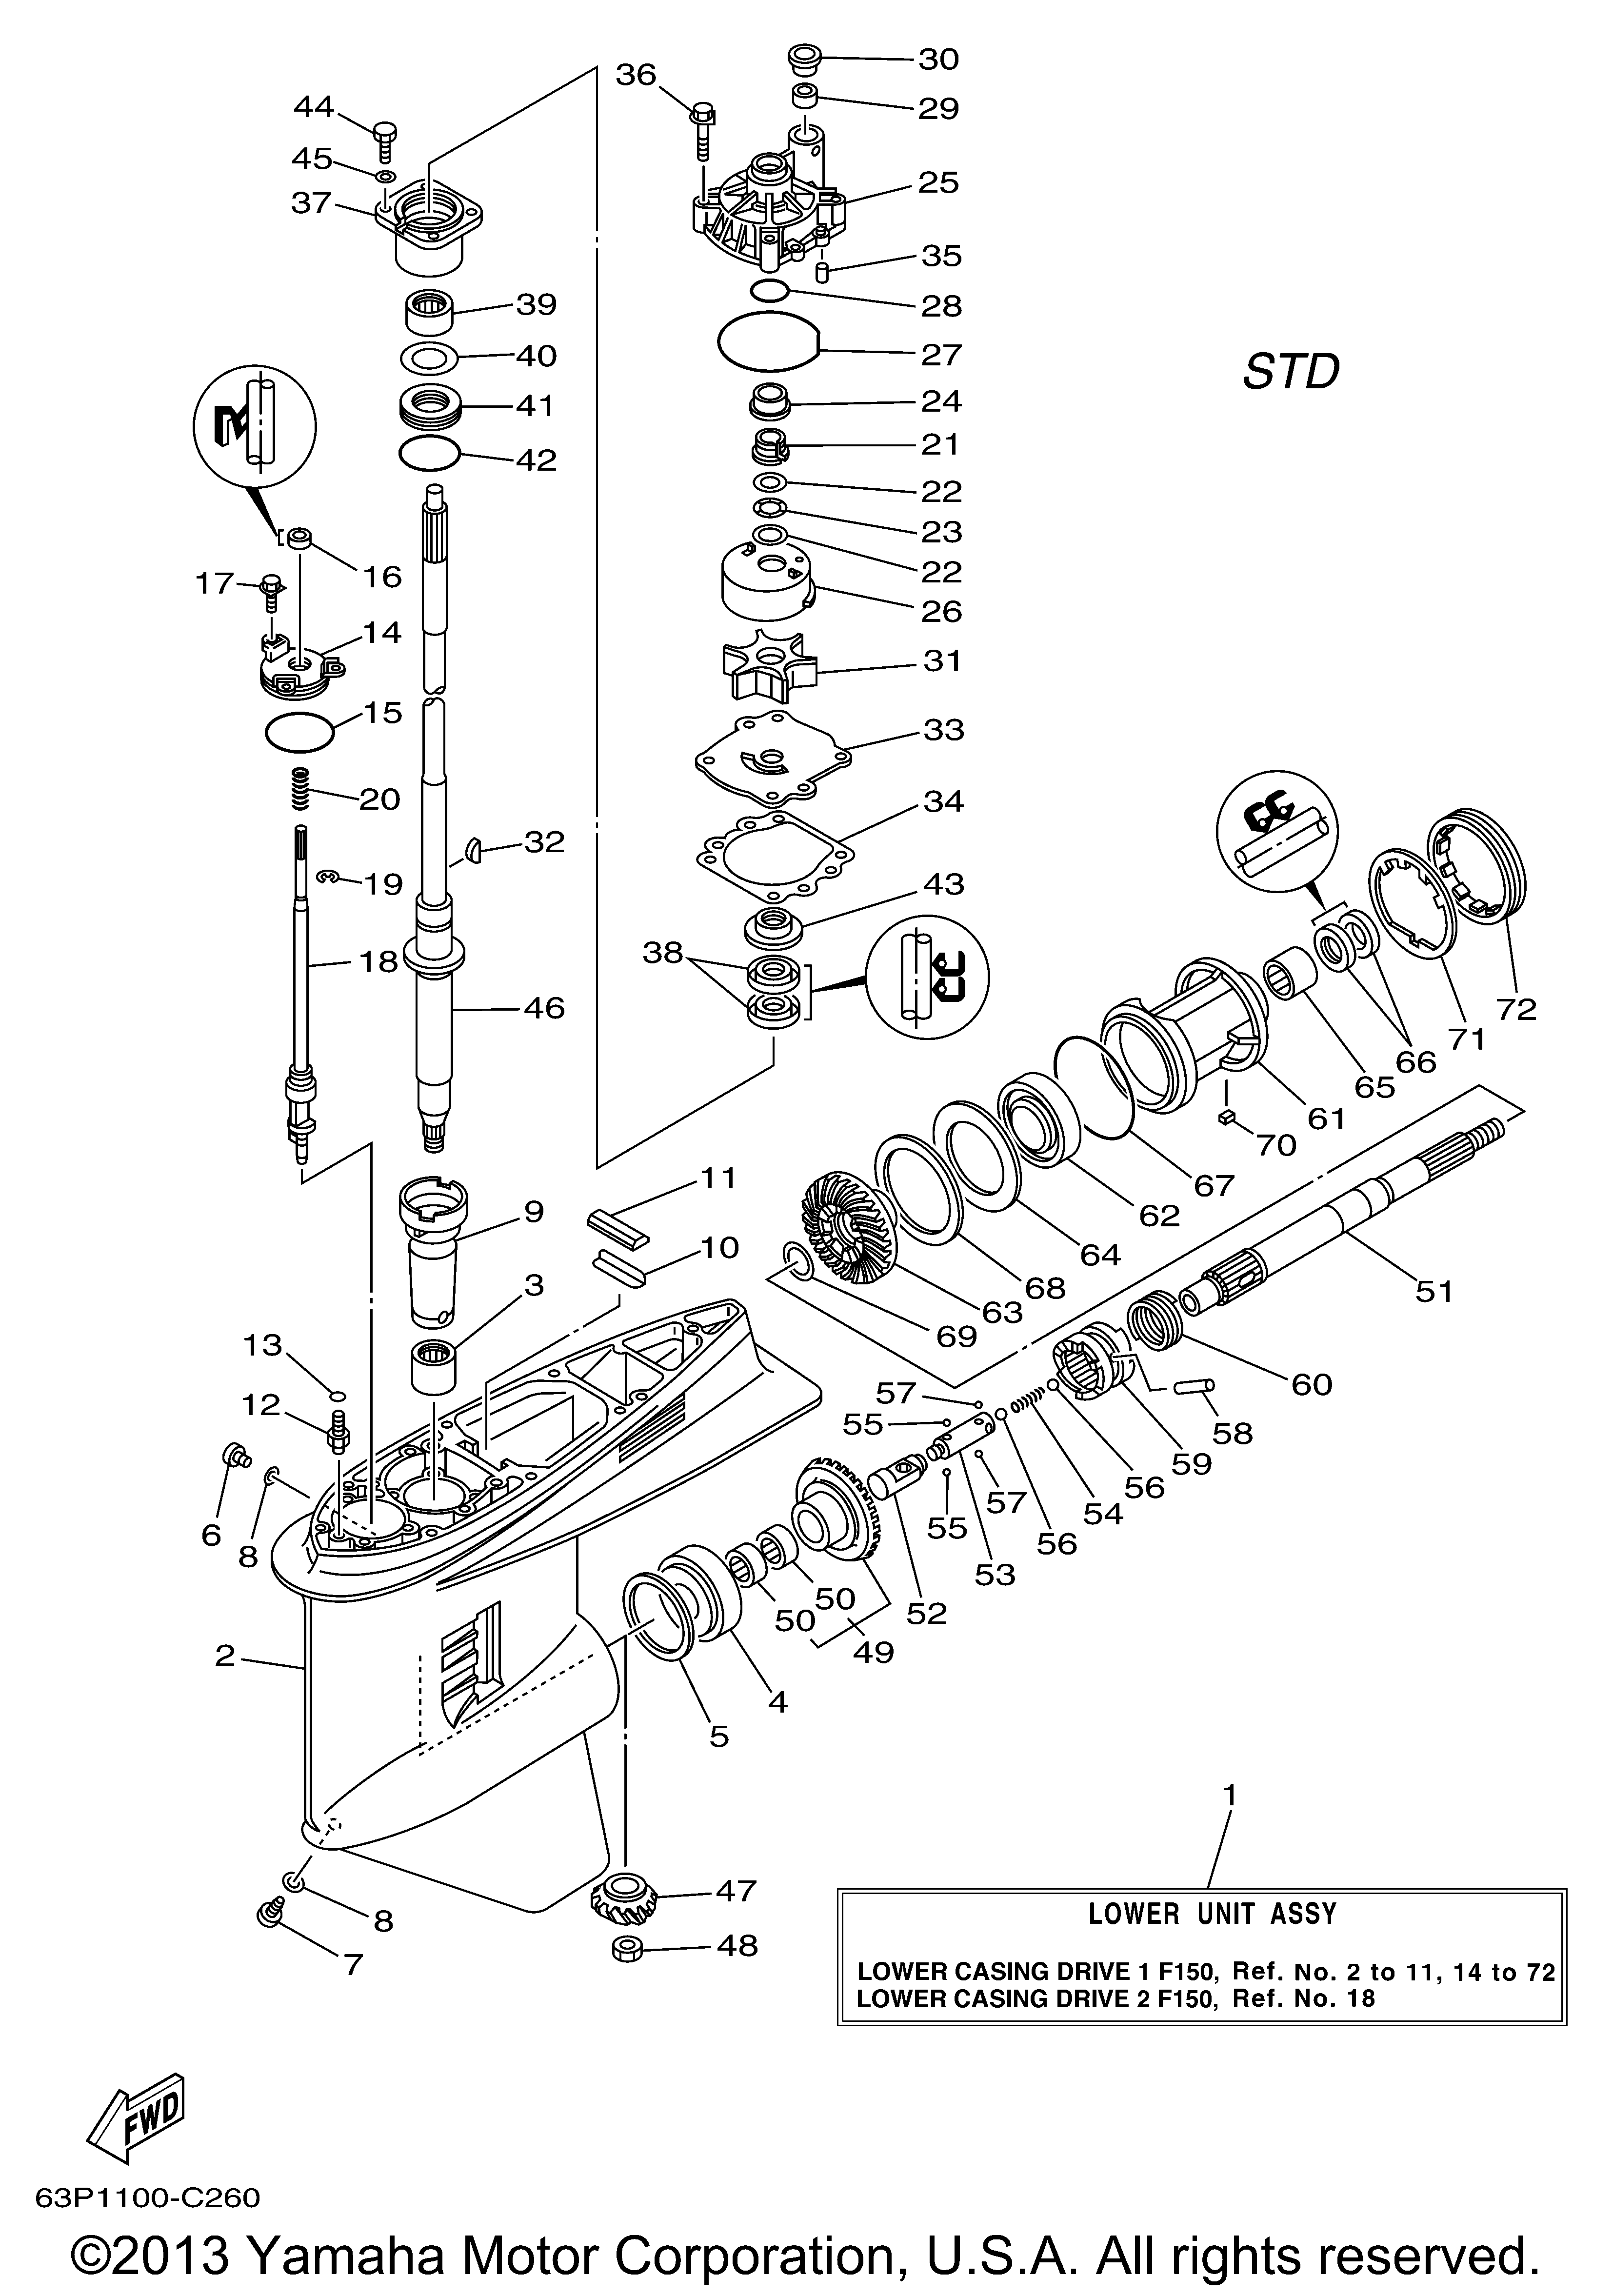 Yamaha Outboard Lower Unit Diagram Trusted Schematics 2 Stroke Carburetor F150tlrd Casing Drive 1 F150 4 Ref